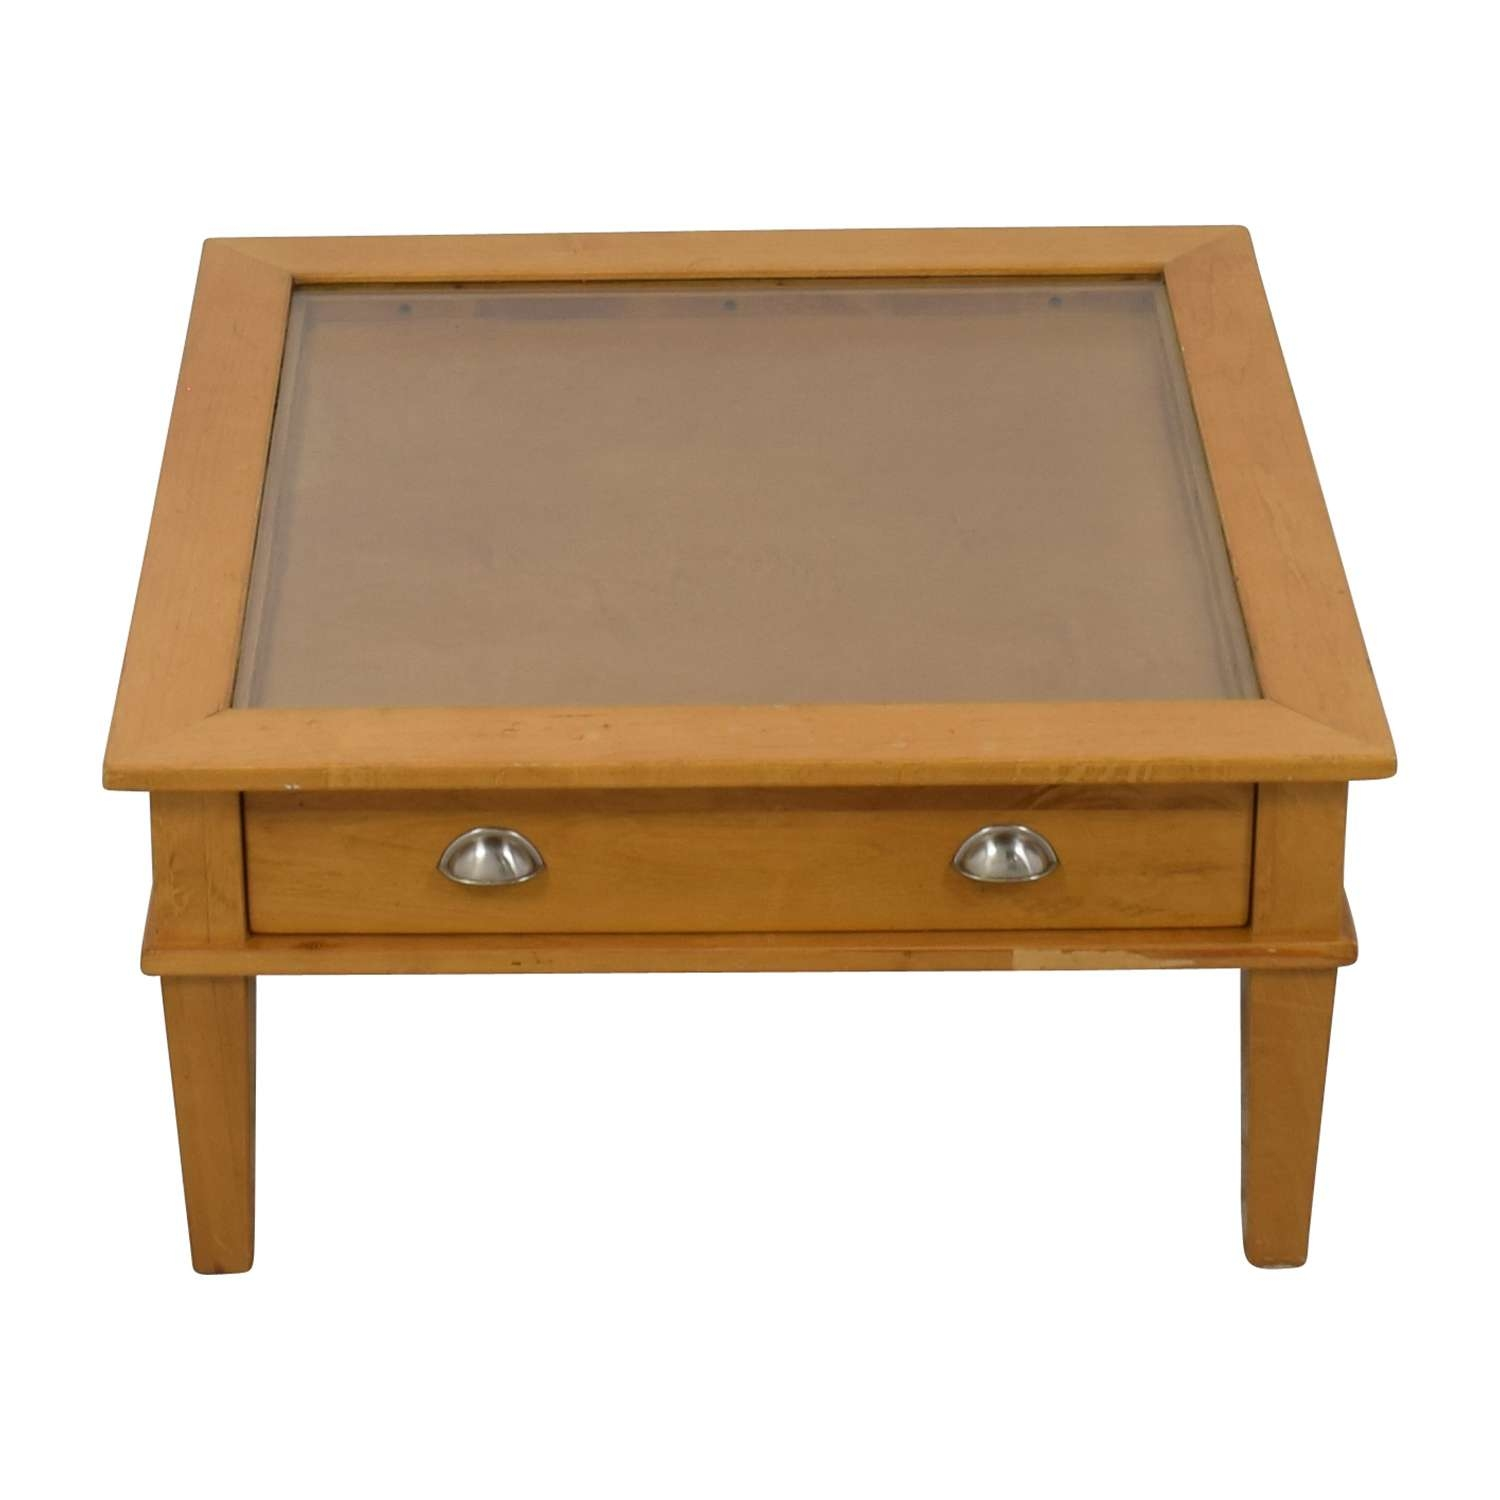 Widely Used Coffee Tables With Shelf Underneath Regarding Coffee Table : Coffee Table With Basket Storage Underneath Square (View 10 of 20)